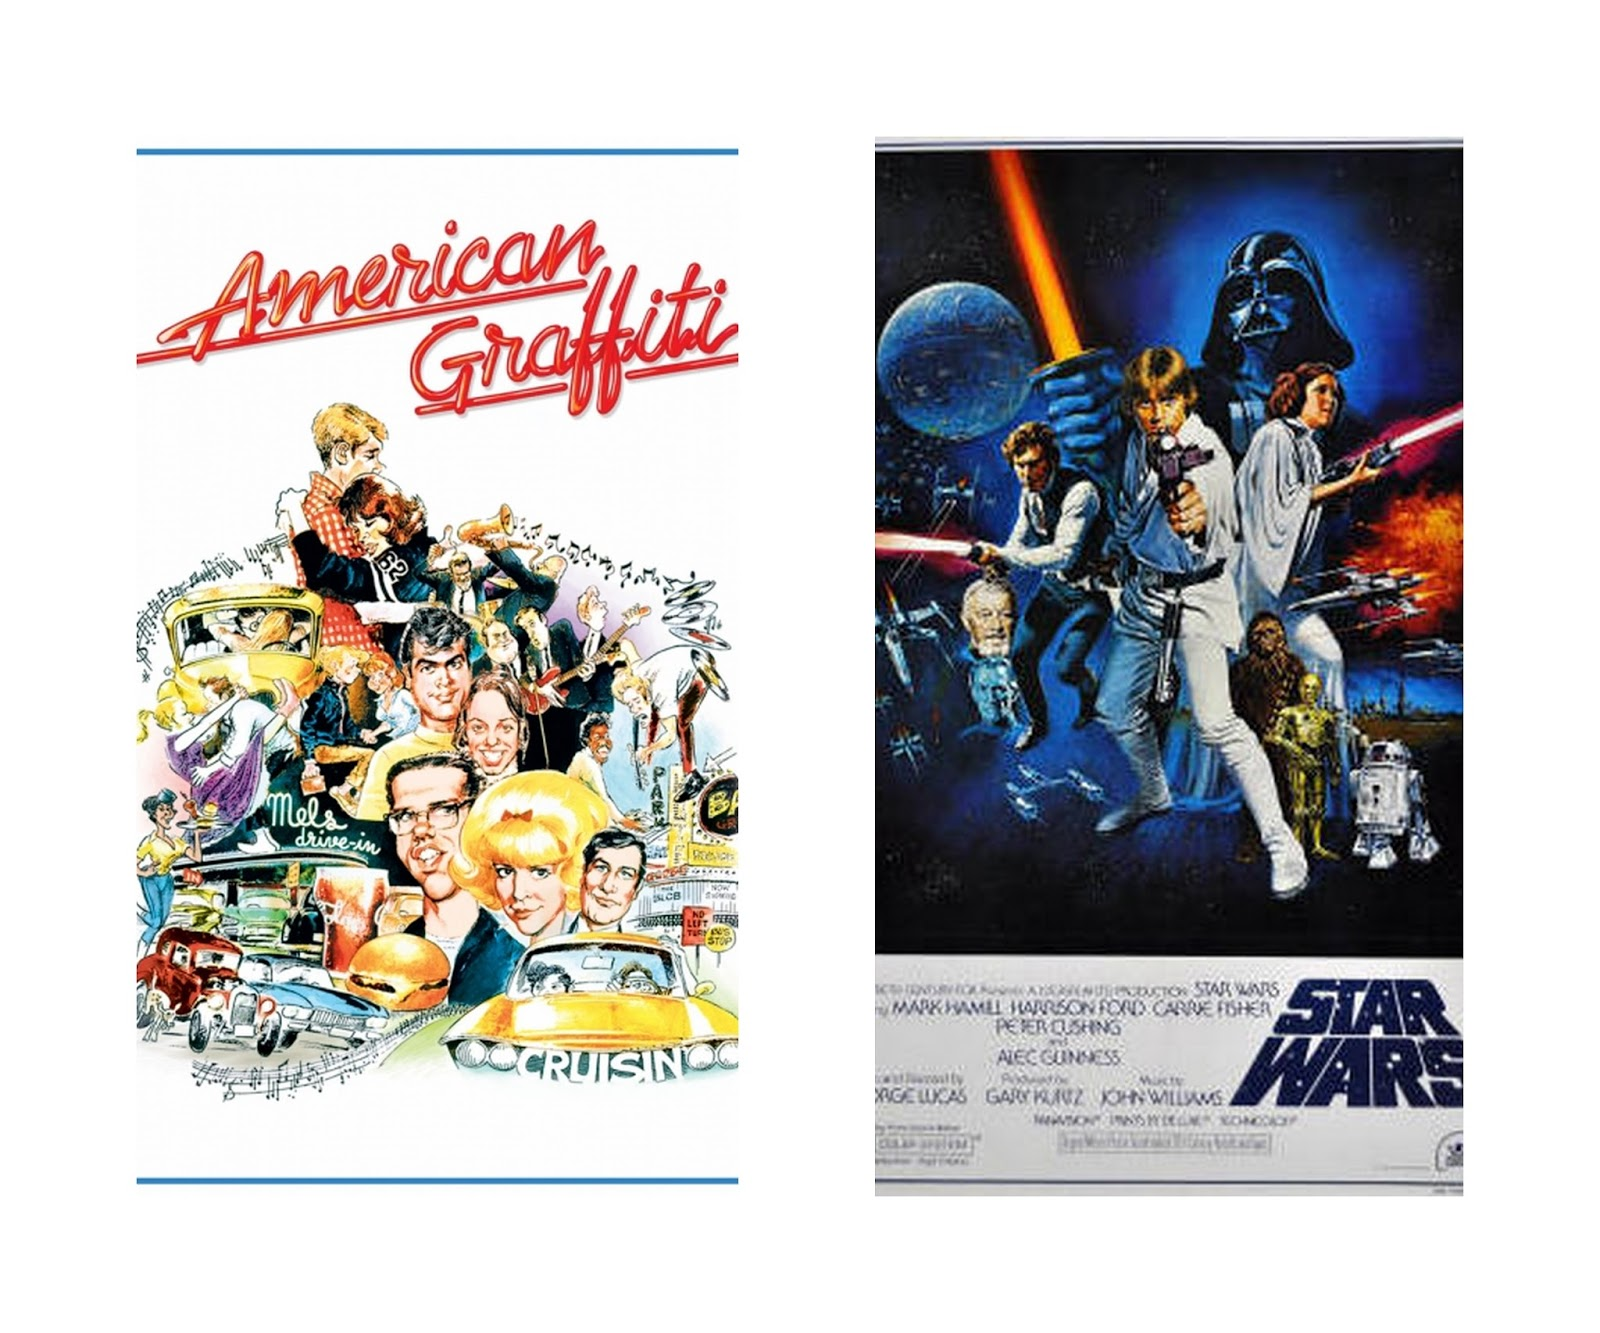 Episode Nothing Star Wars In The 1970s 7 Key Similarities